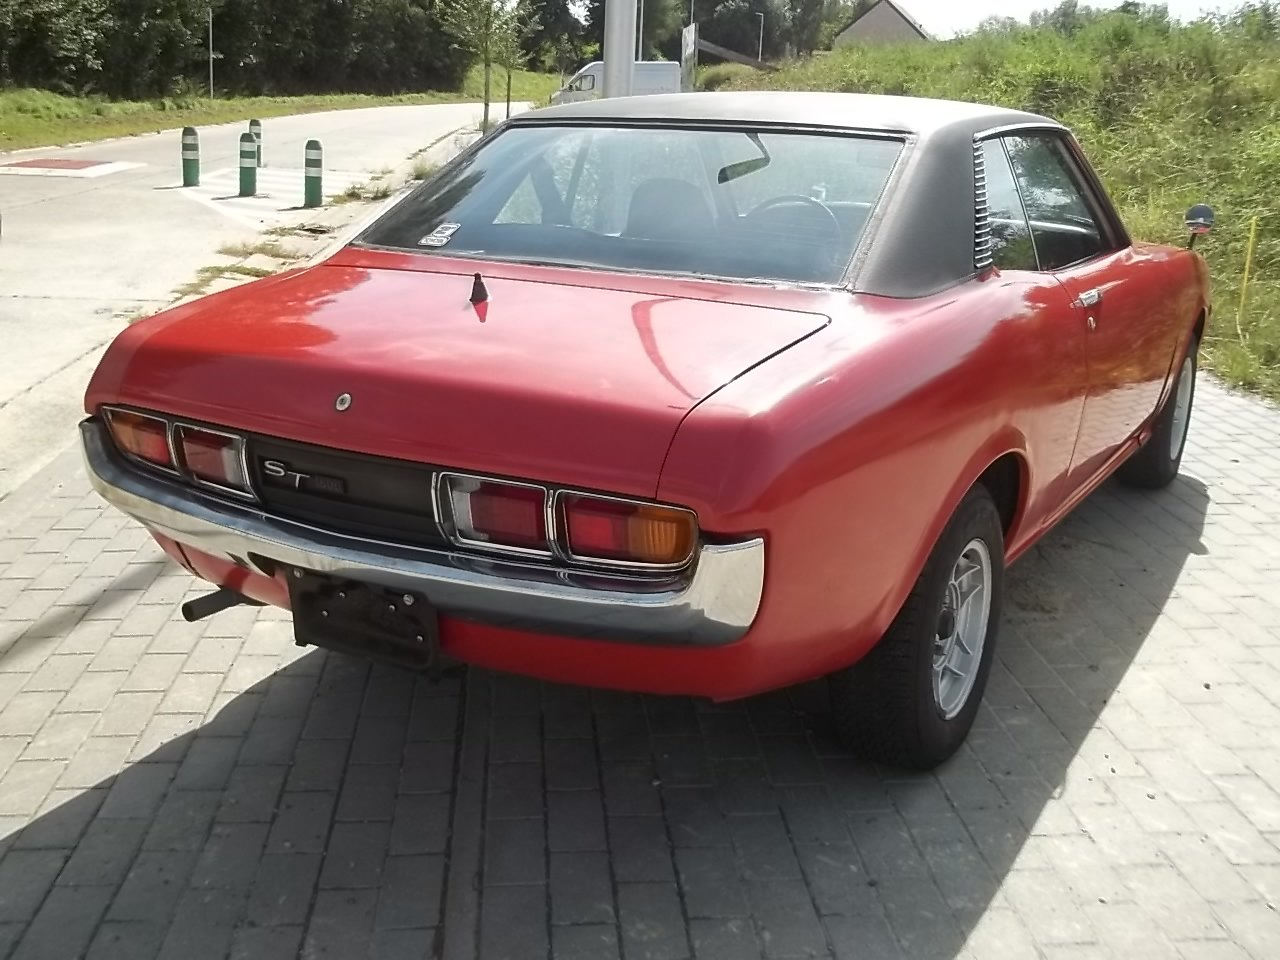 1973 Toyota Celica TA22 1600ST  1 owner from new For Sale (picture 3 of 6)